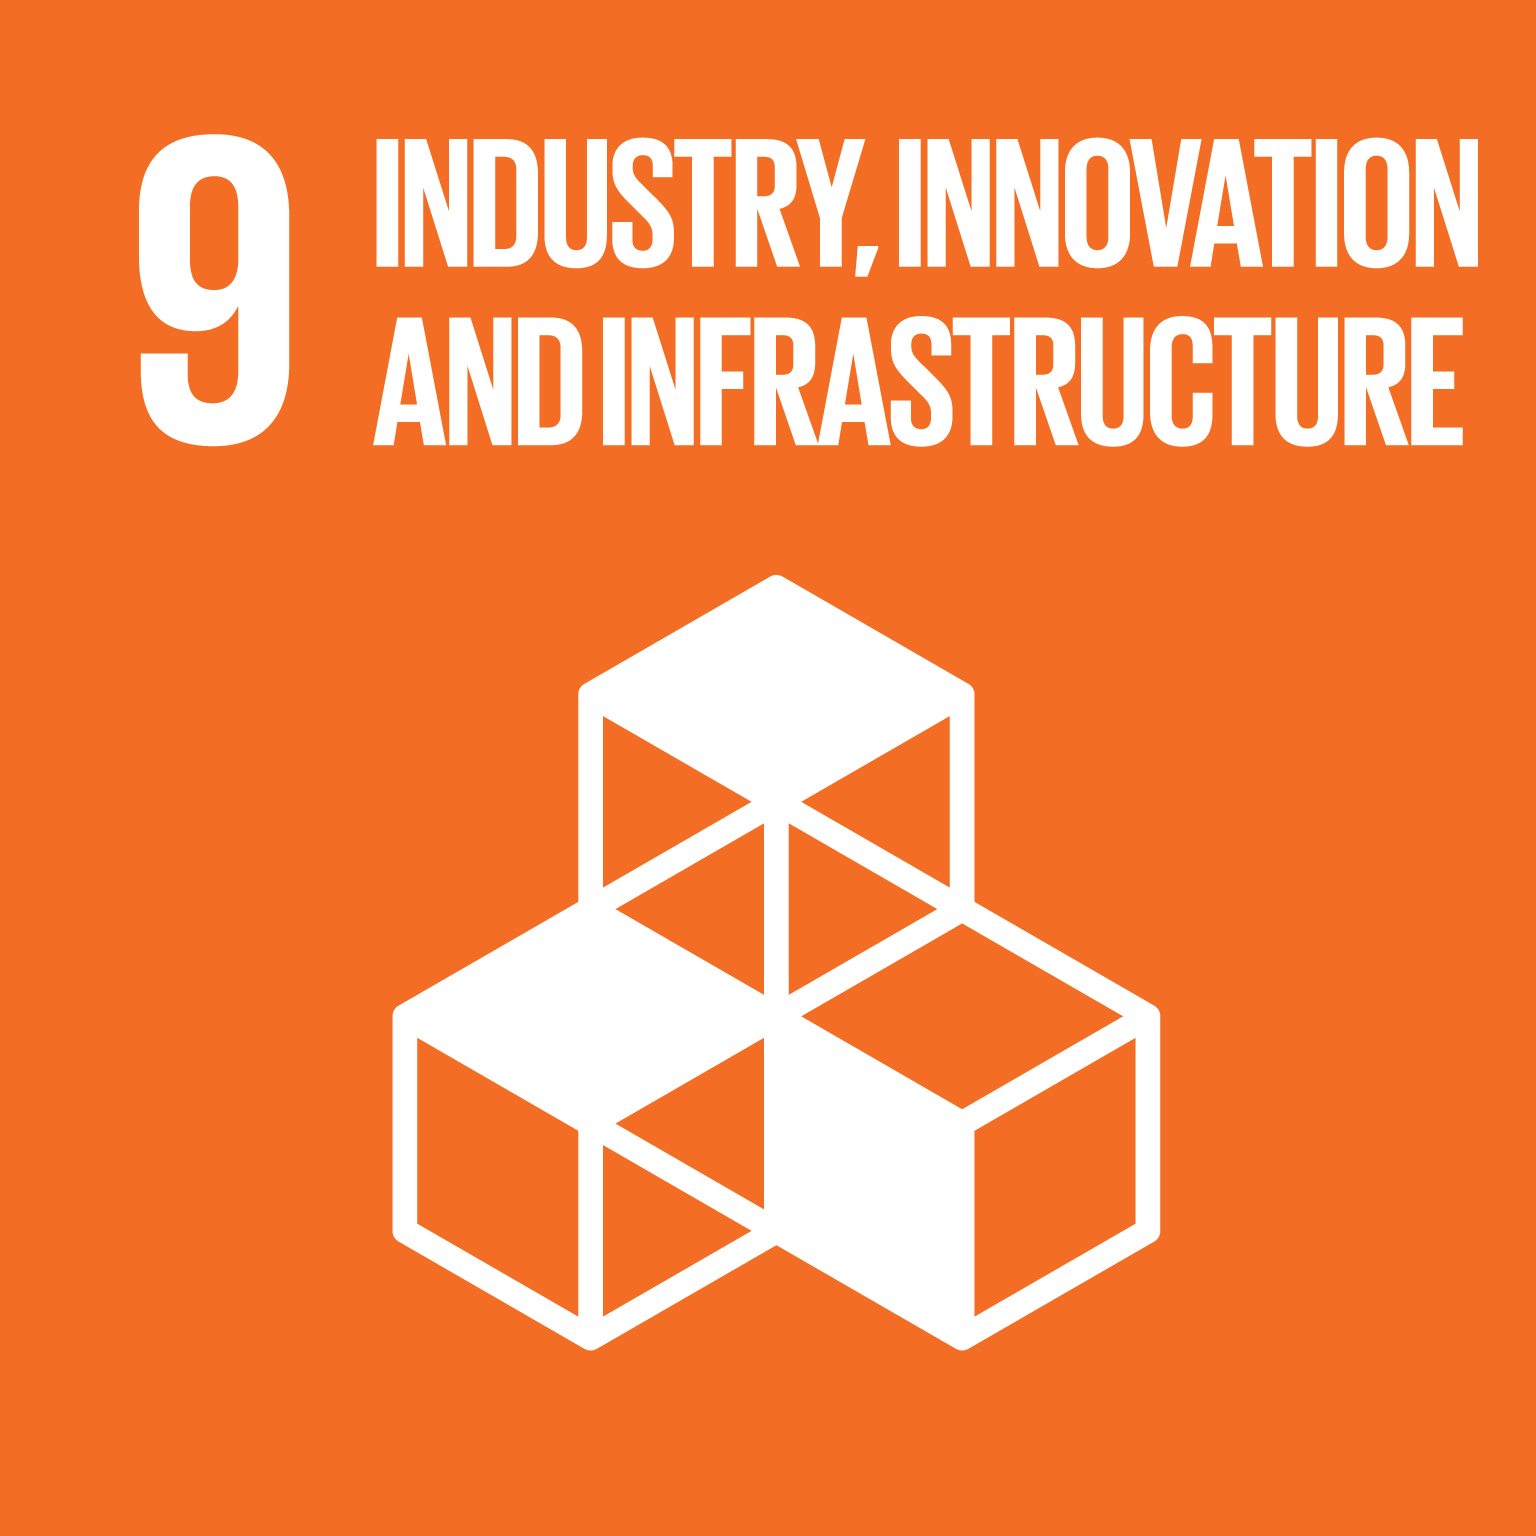 Industry, innovation and infraestructure - Sustainable Development Goals